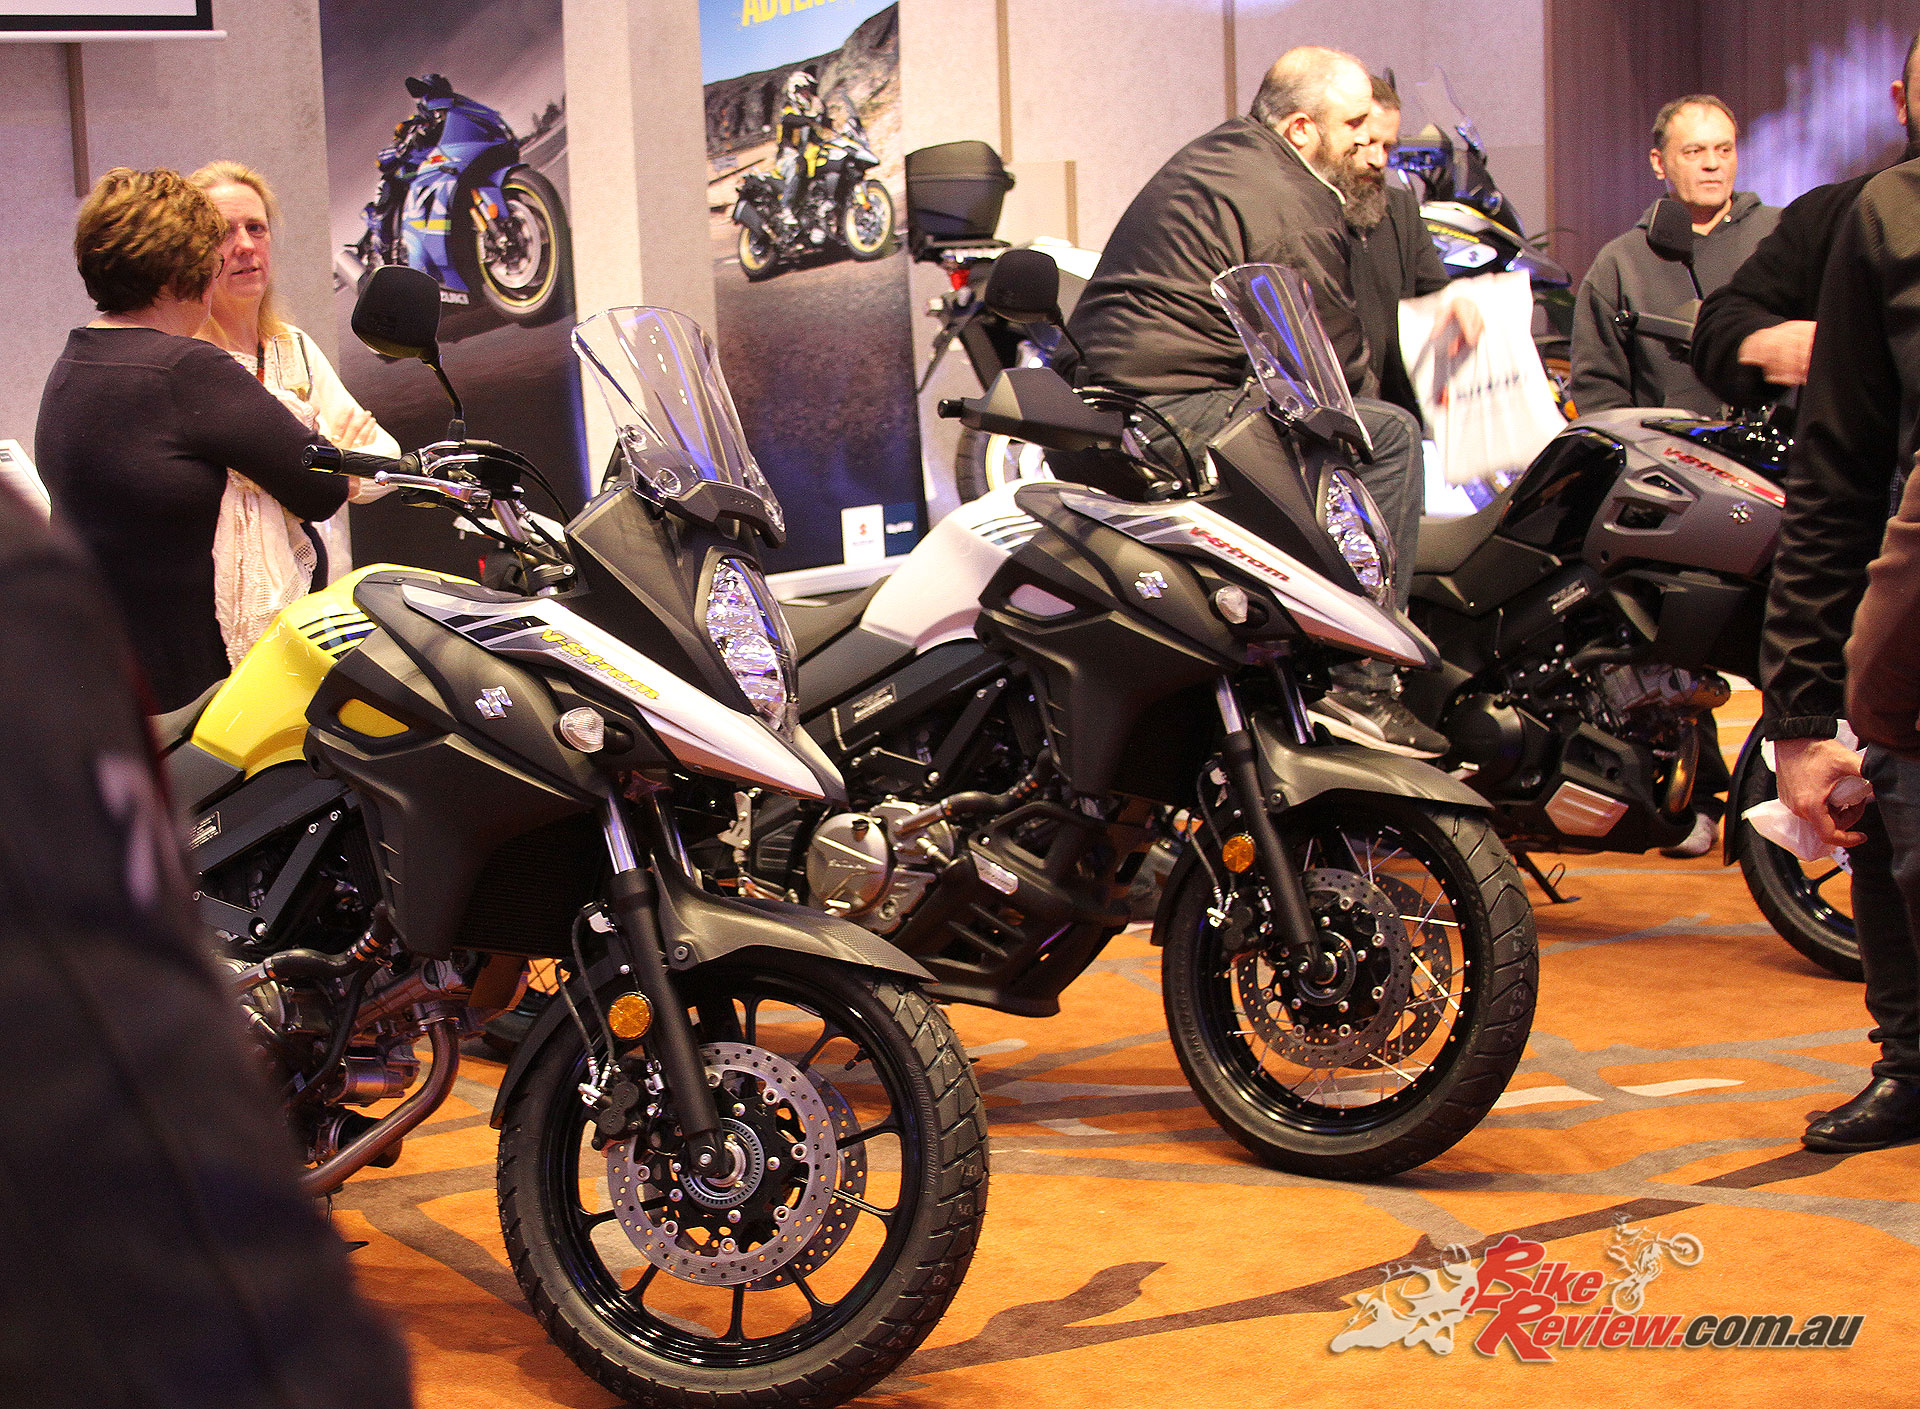 A good opportunity to check out the different ergonomics between the V-Strom models